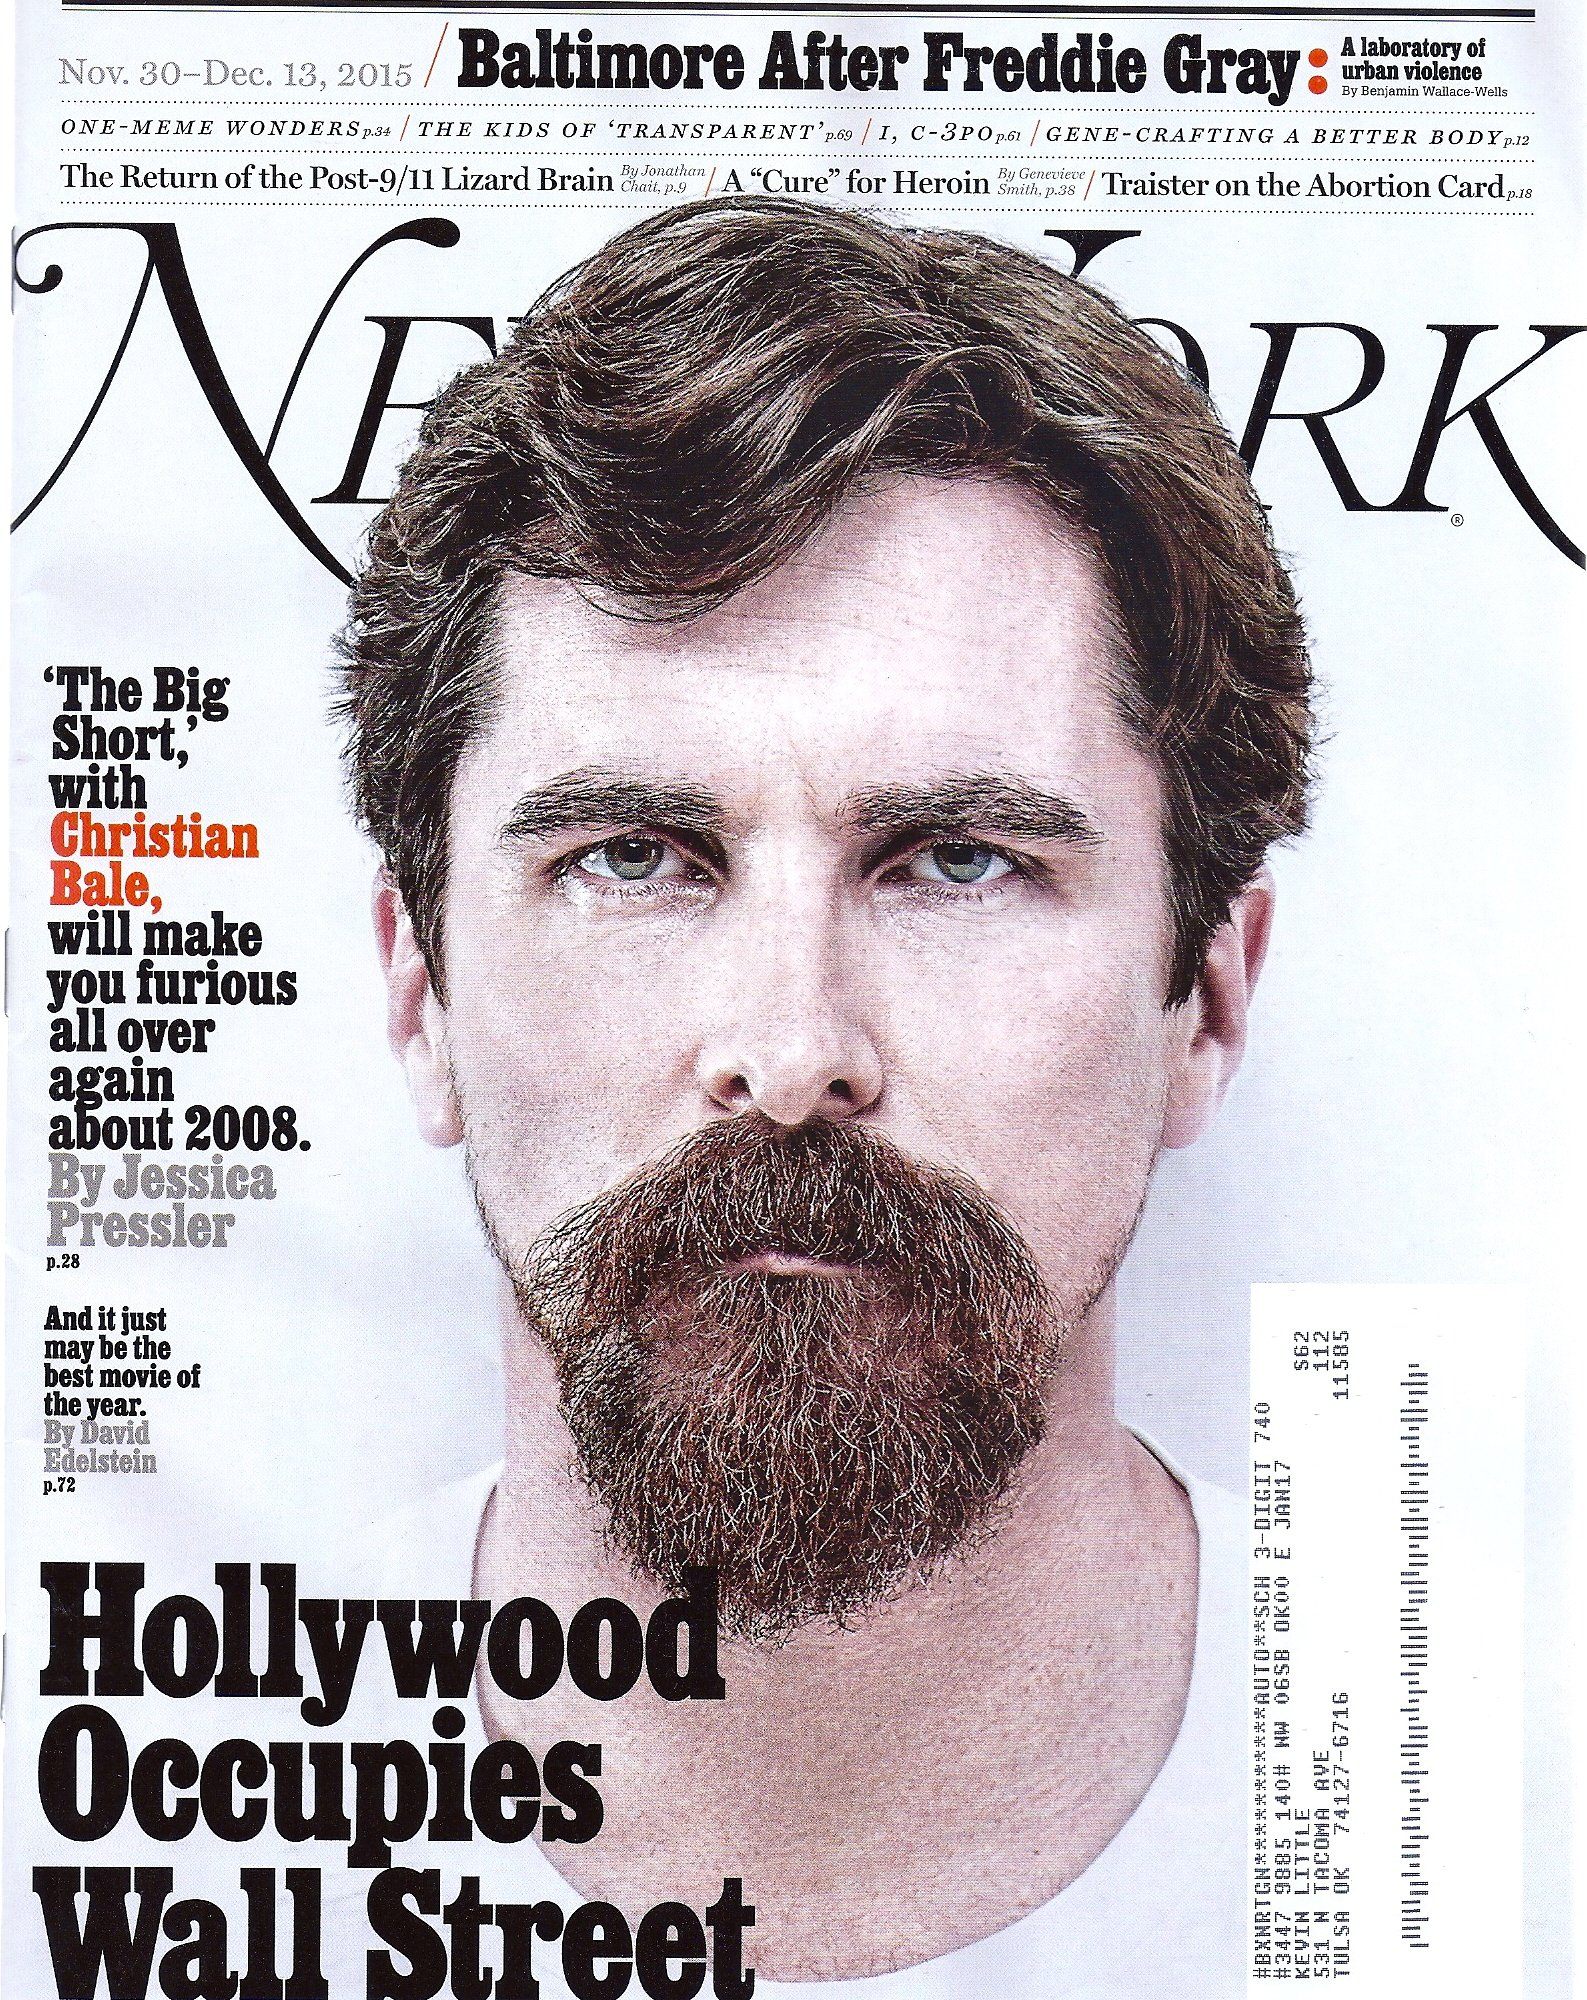 Christian Bale (The Big Short) l Baltimore After Freddie Gray l A